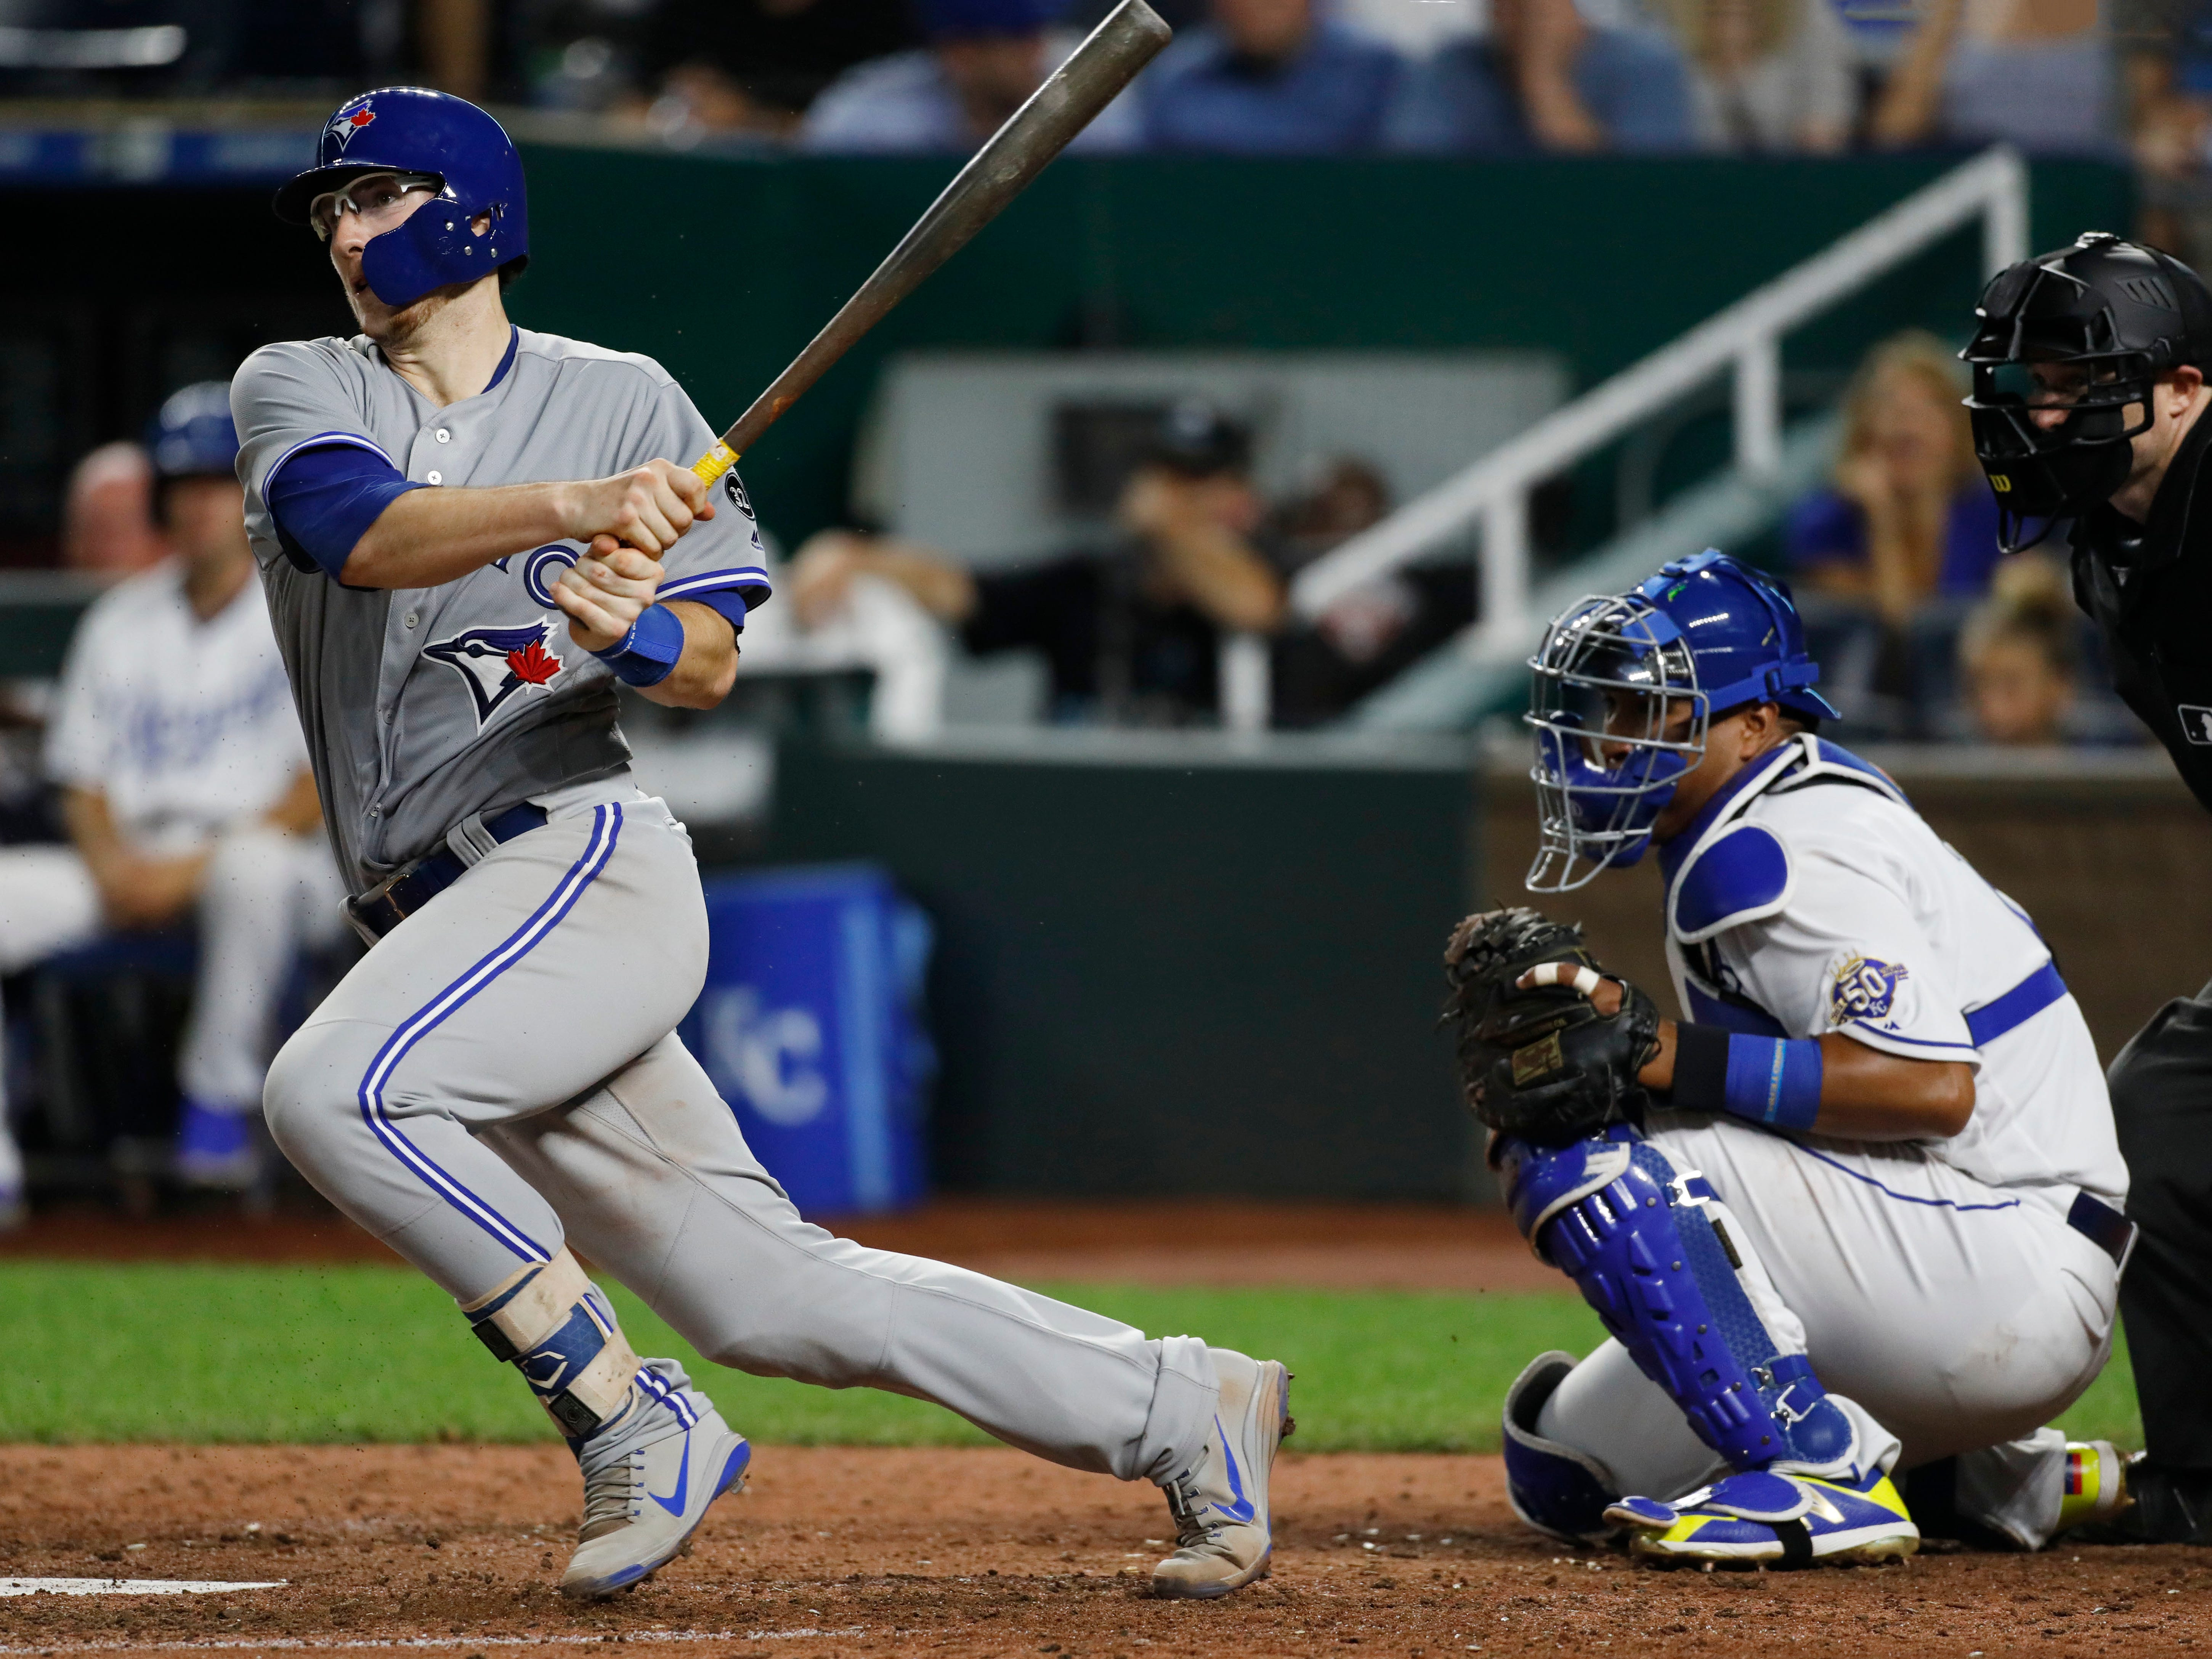 Toronto Blue Jays' Danny Jansen, left, hits a single in his first major league start as Kansas City Royals catcher Salvador Perez, right, looks on in the eighth inning of a baseball game at Kauffman Stadium in Kansas City, Mo., Monday, Aug. 13, 2018. The Royals defeated the Blue Jays 3-1. (AP Photo/Colin E. Braley)